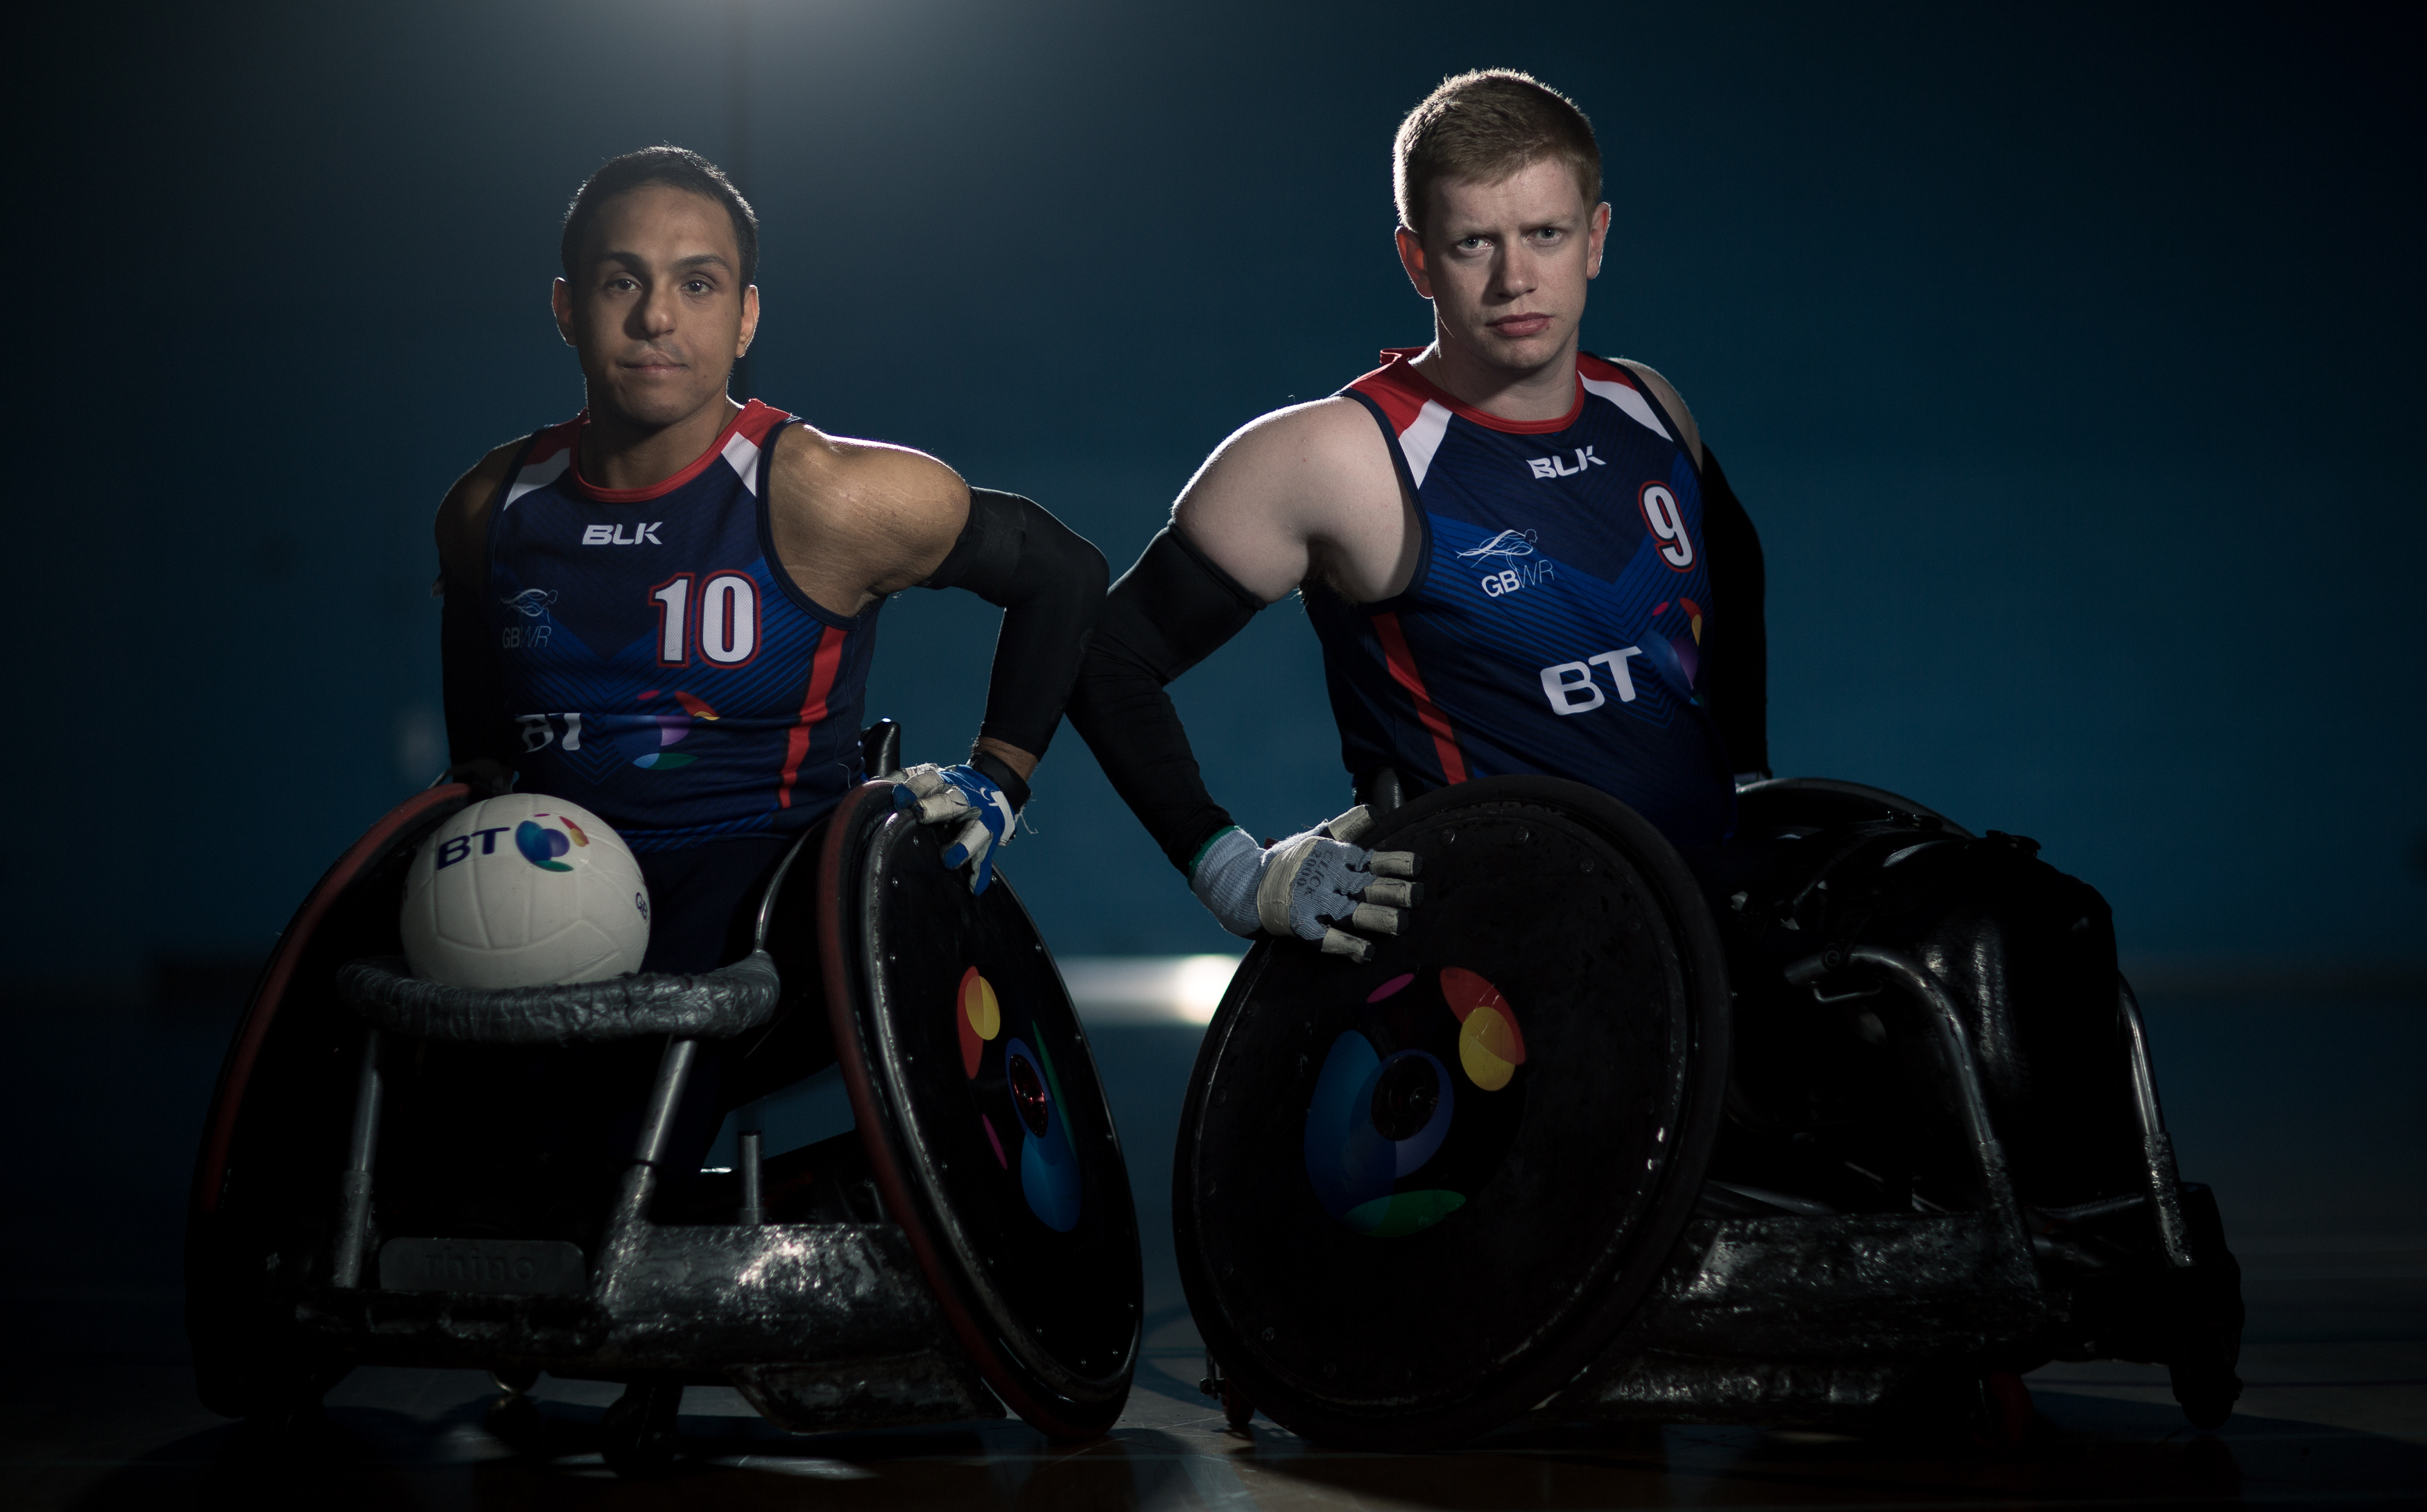 Wheelchair Rugby players join roster of world-class BT Ambassadors